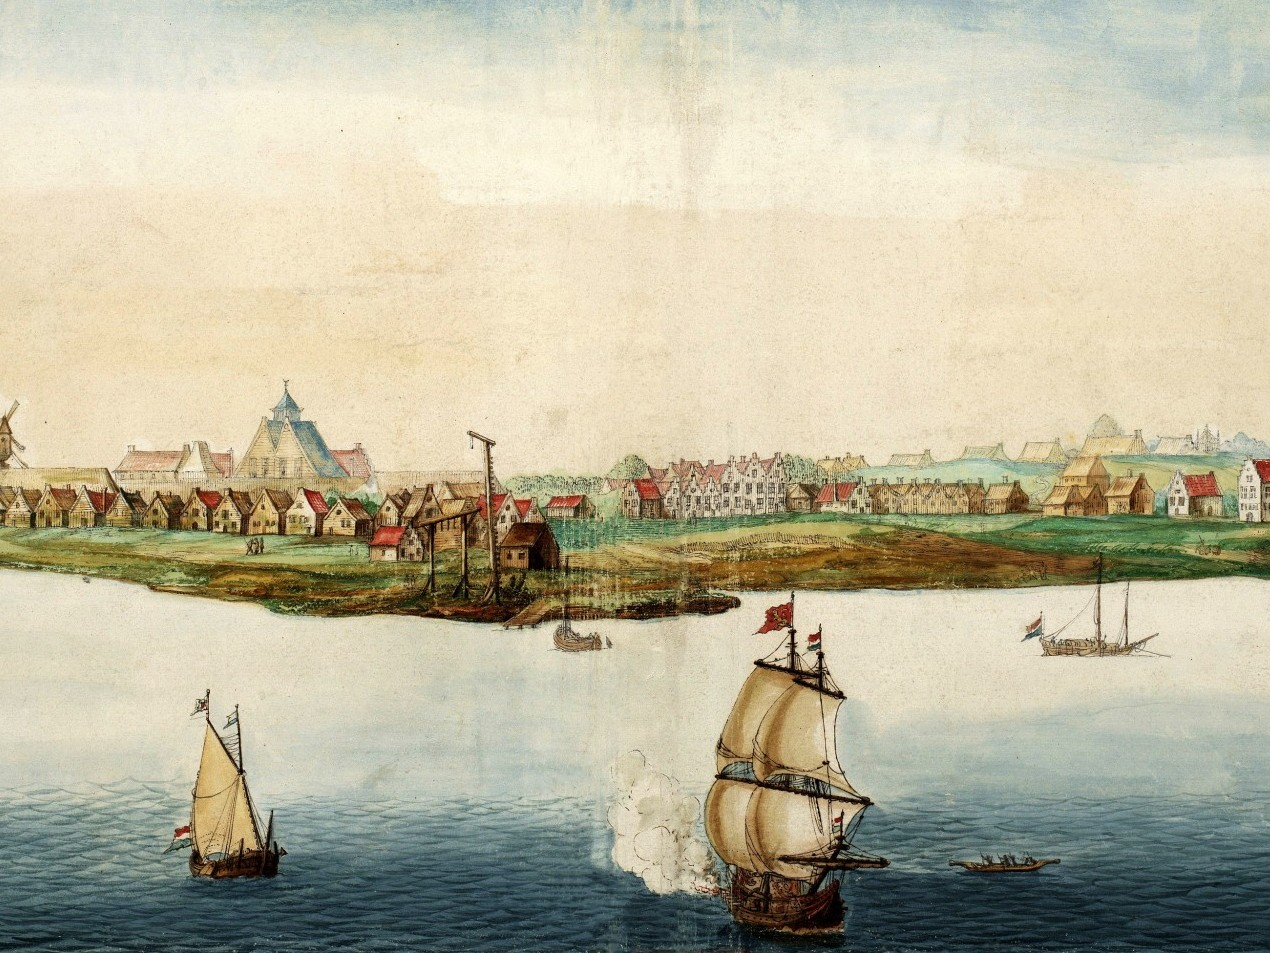 Nieuw Amsterdam, 1664. Source: Johannes Vingboons [Public domain], via Wikimedia Commons